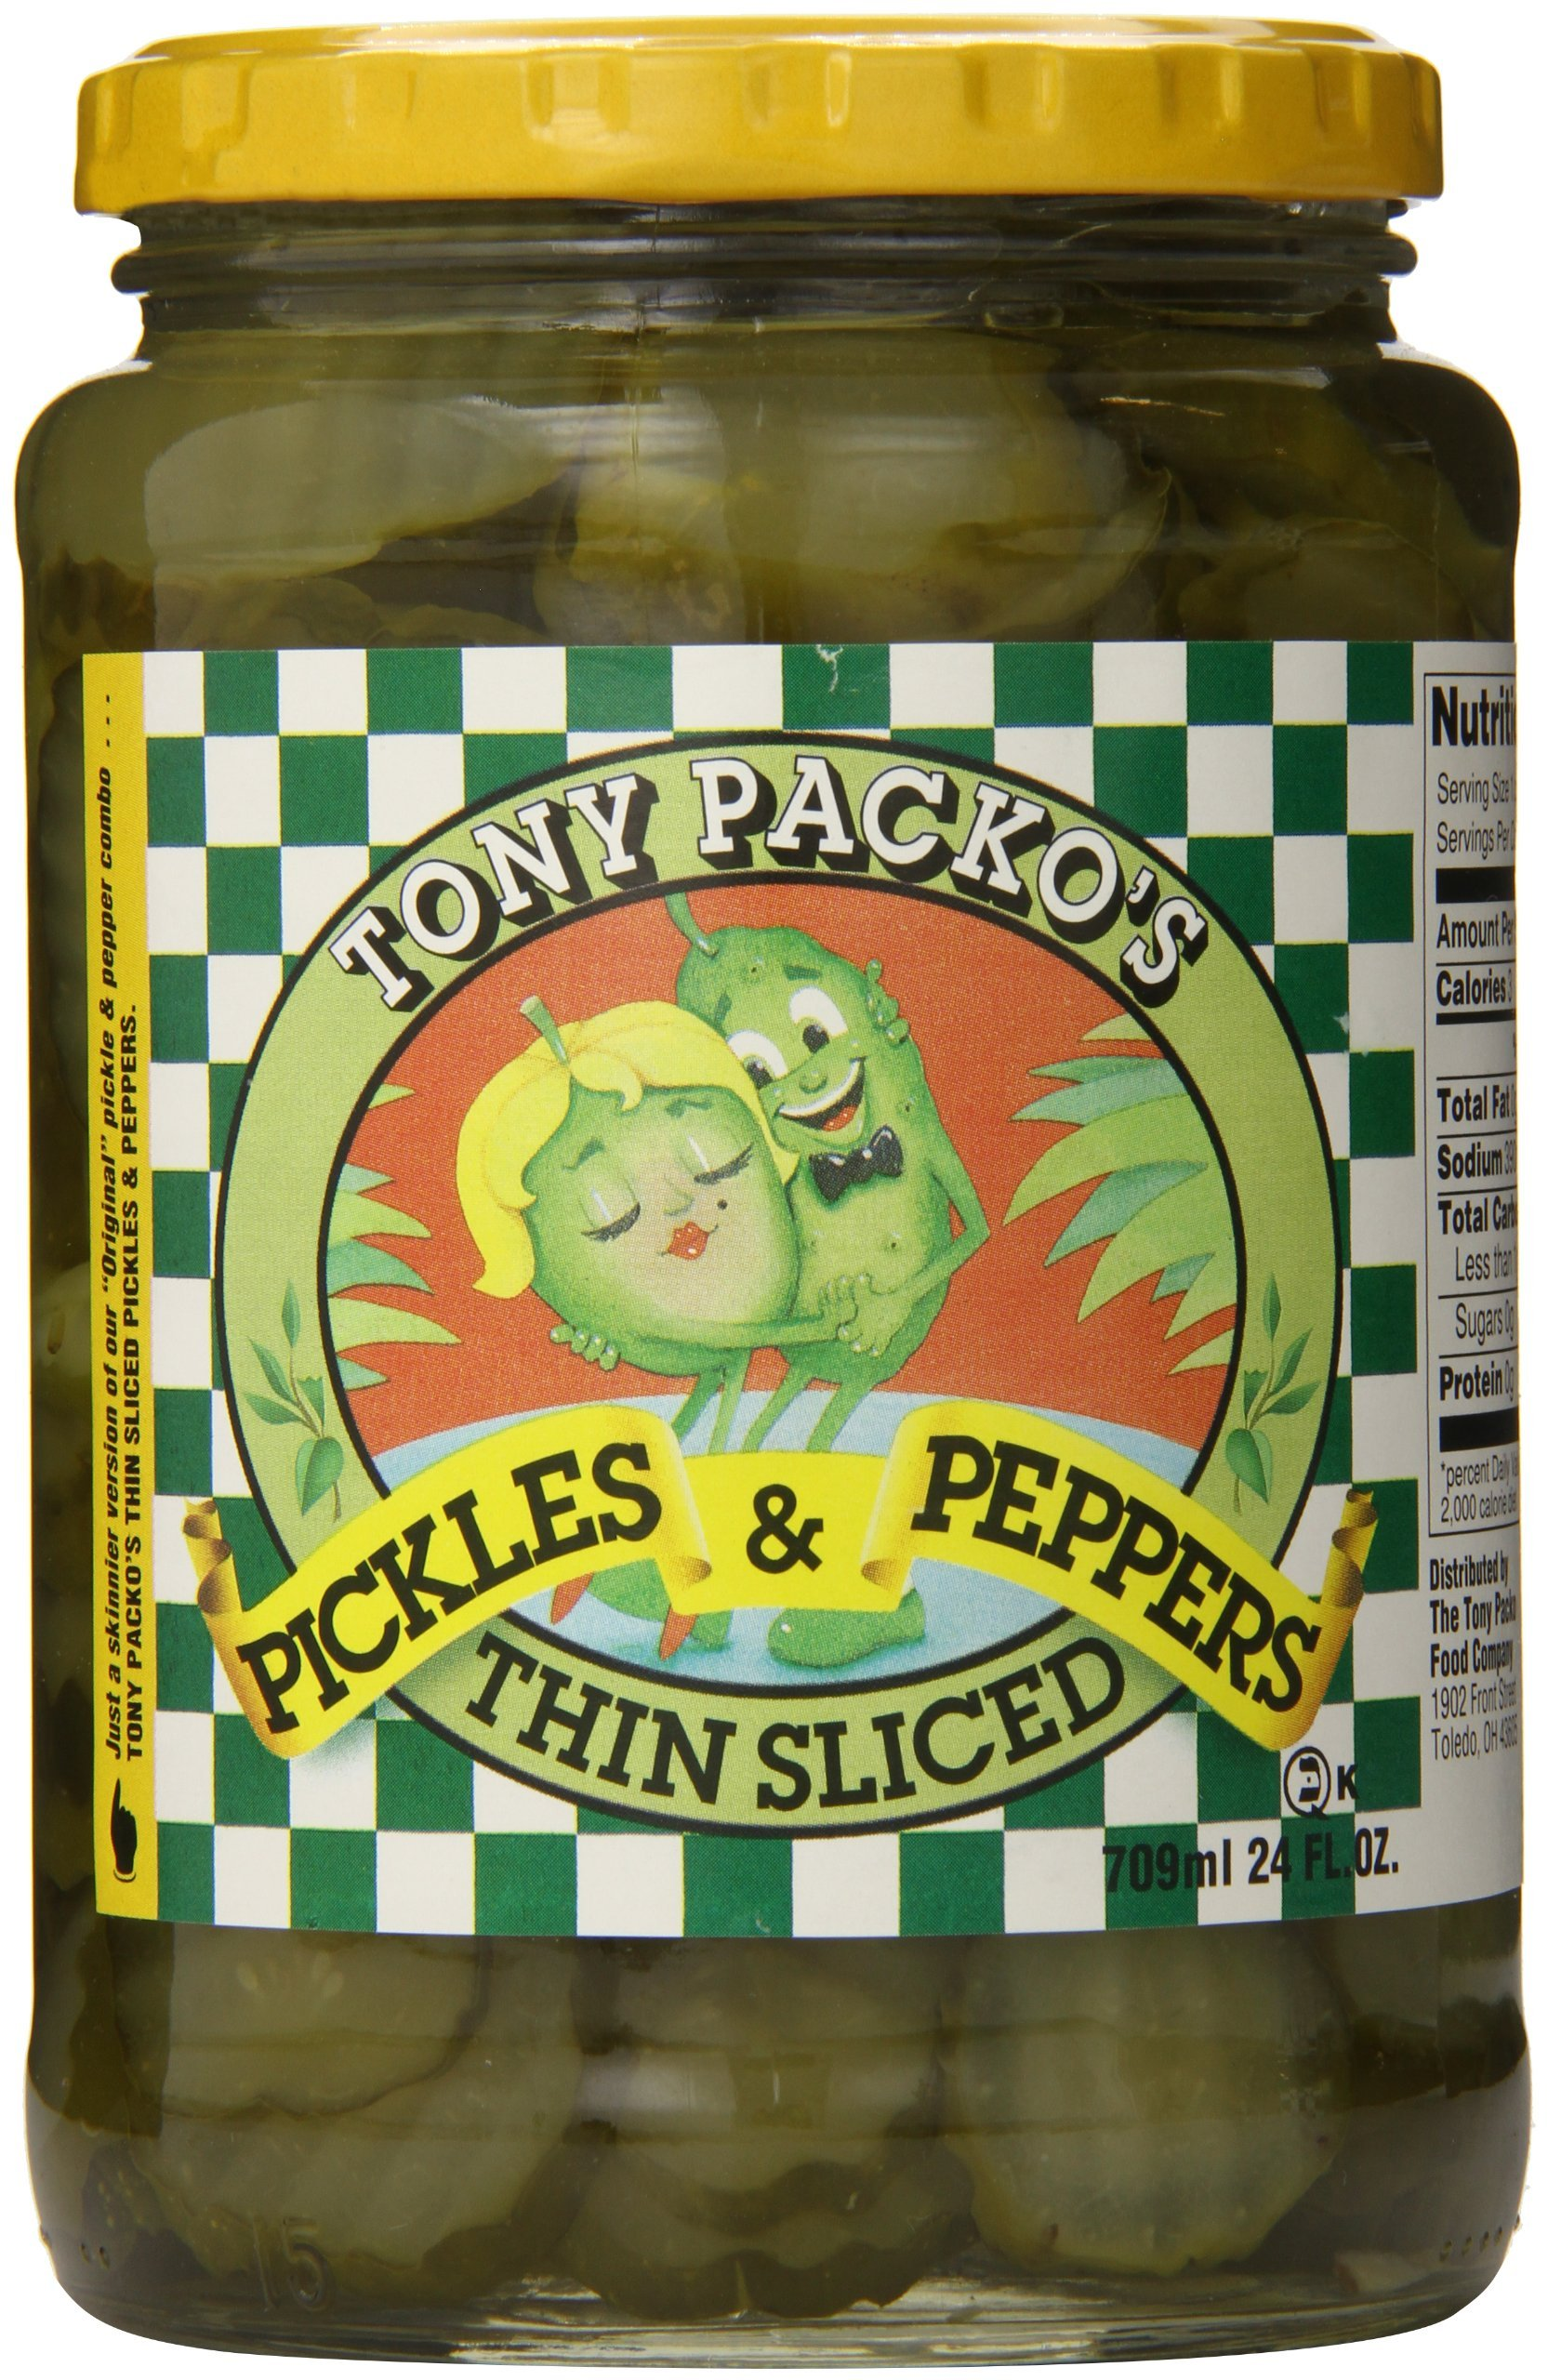 Tony Packos Pickle Ppr Swt Hot by Tony Packo's